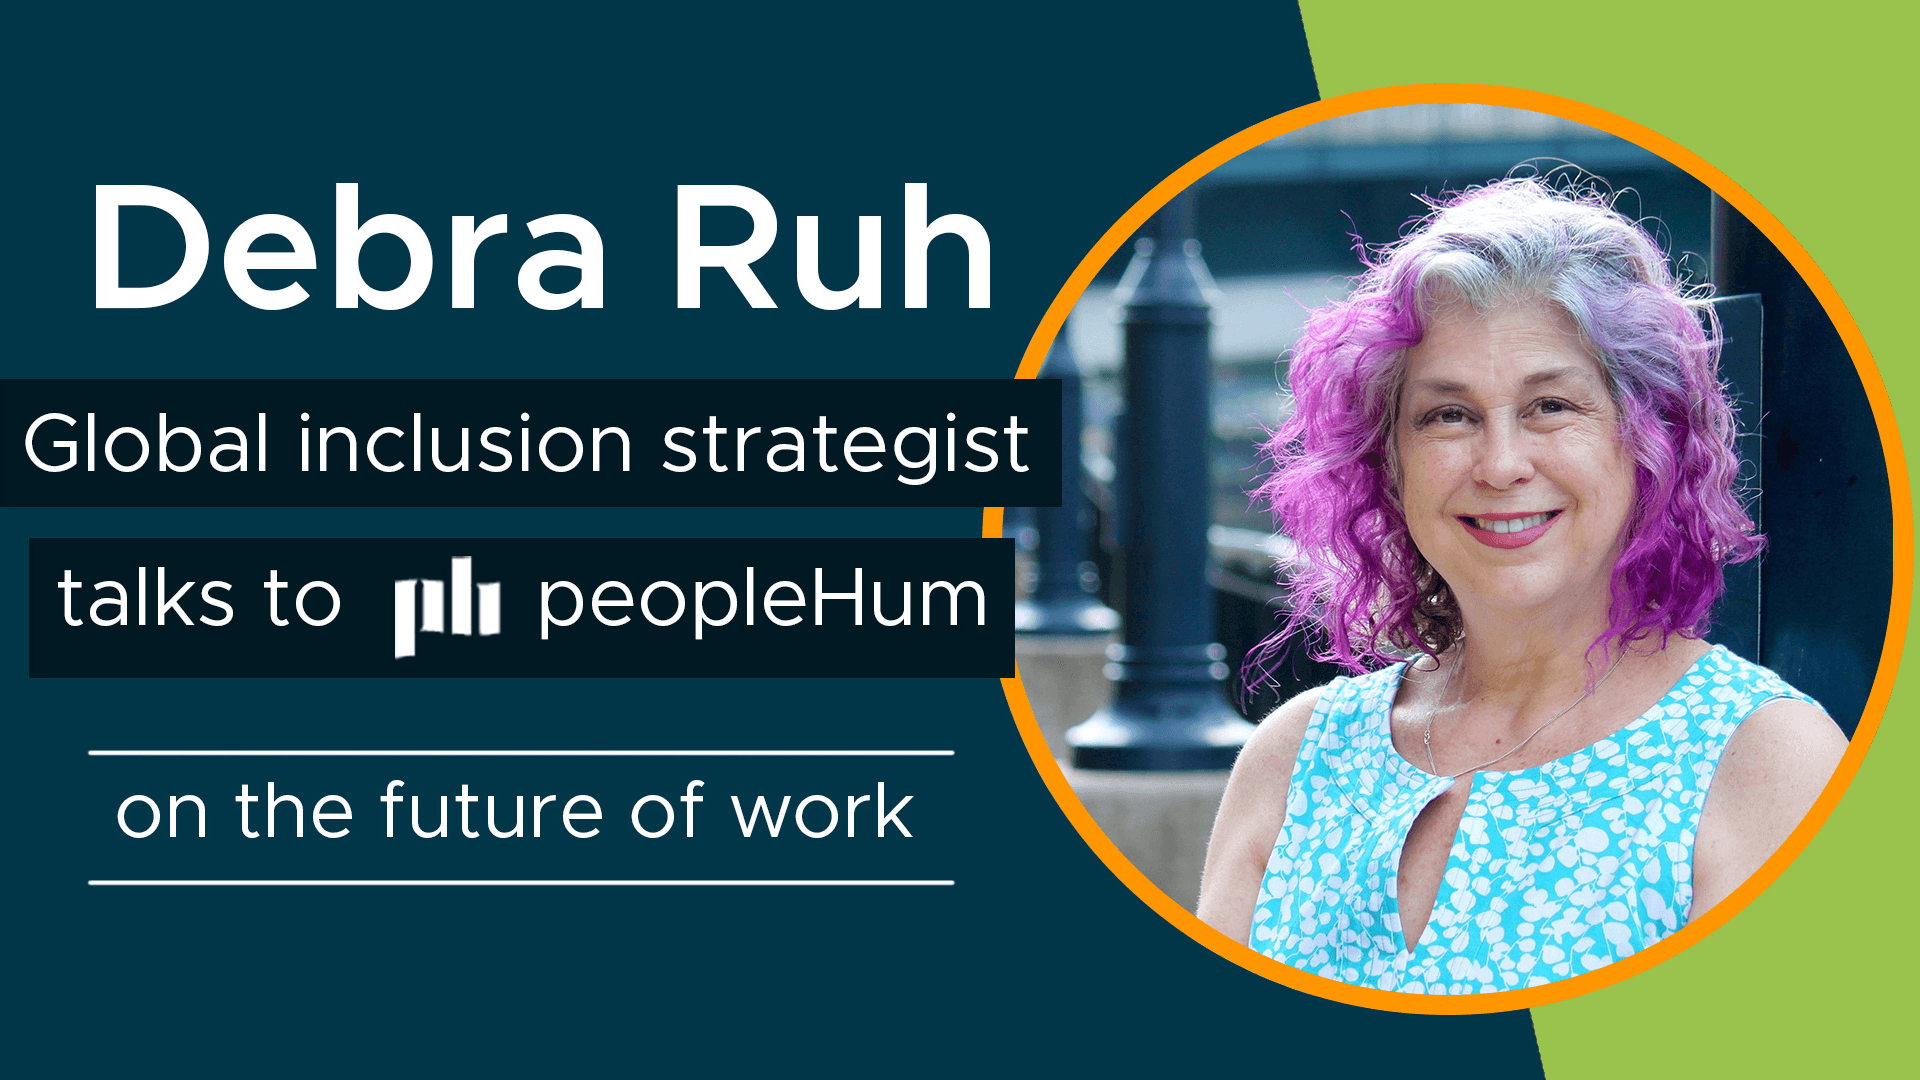 Celebrating our differences - Debra Ruh [Interview]